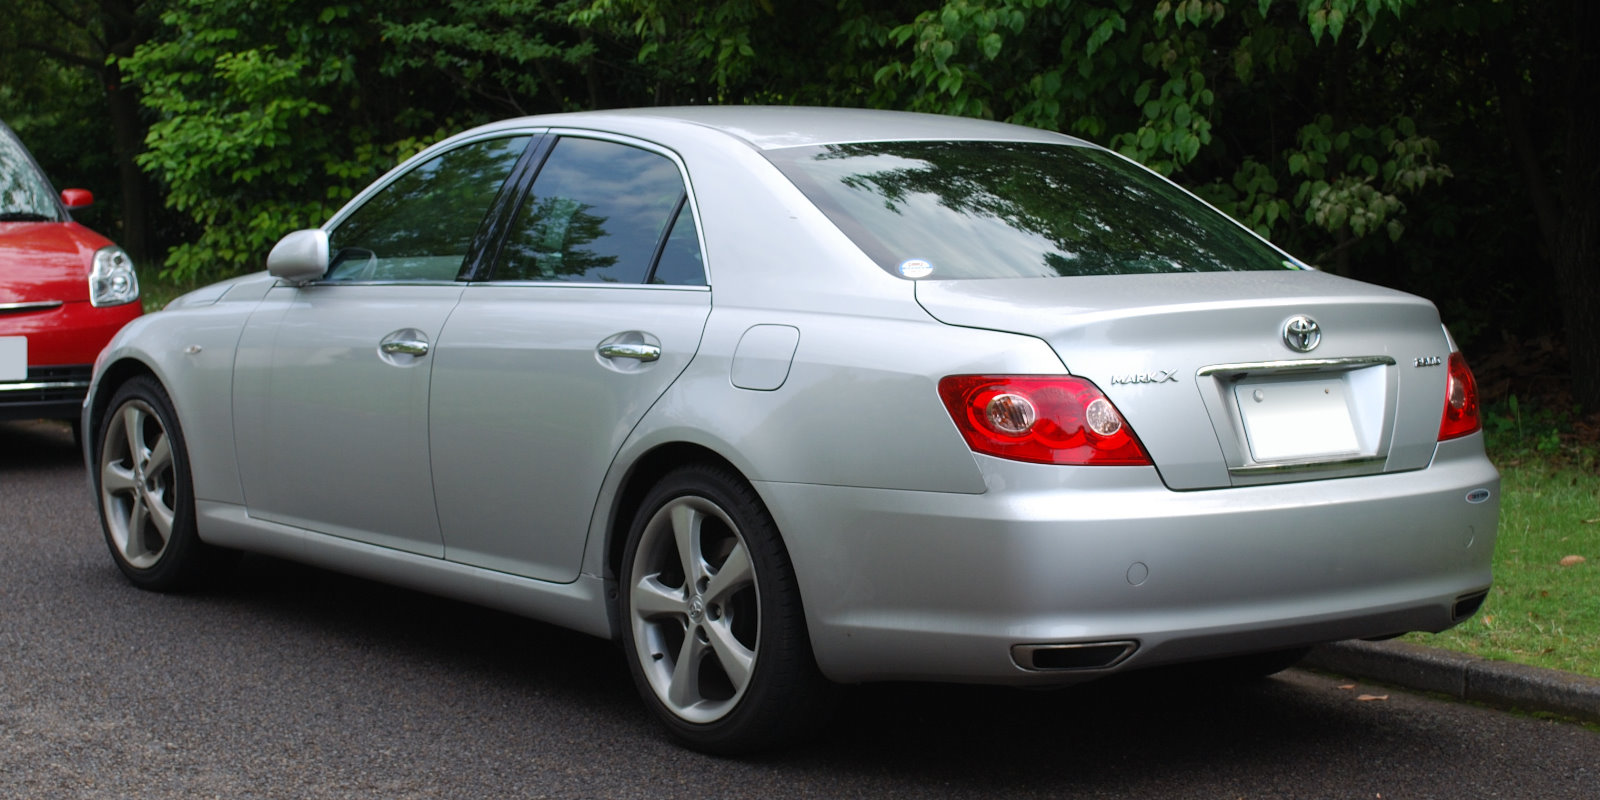 Toyota Mark X Backgrounds on Wallpapers Vista